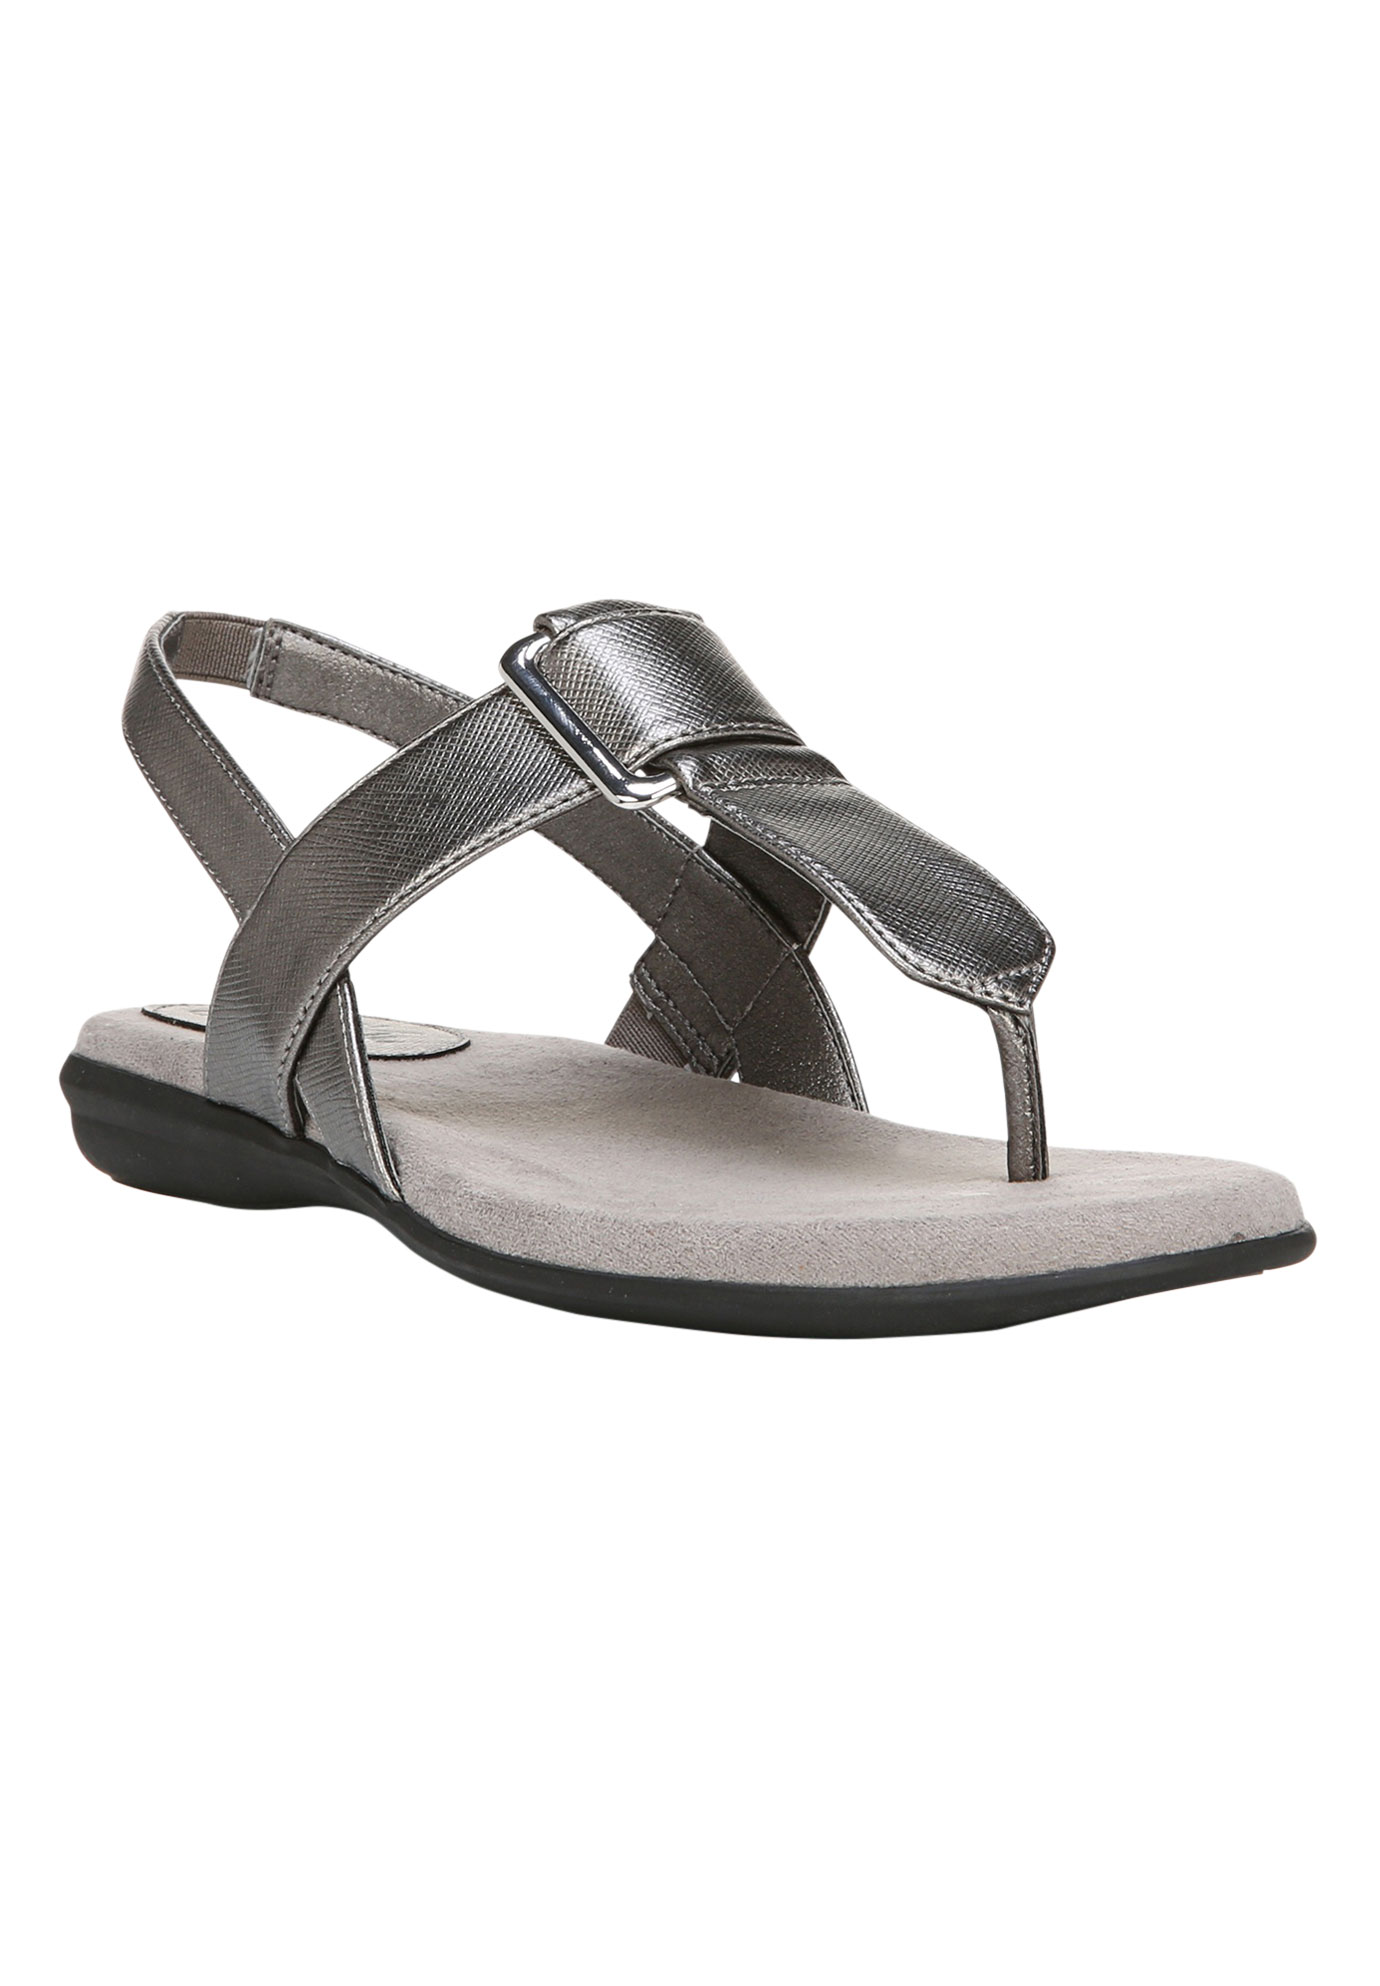 Brooke Sandals by LifeStride, PEWTER, hi-res